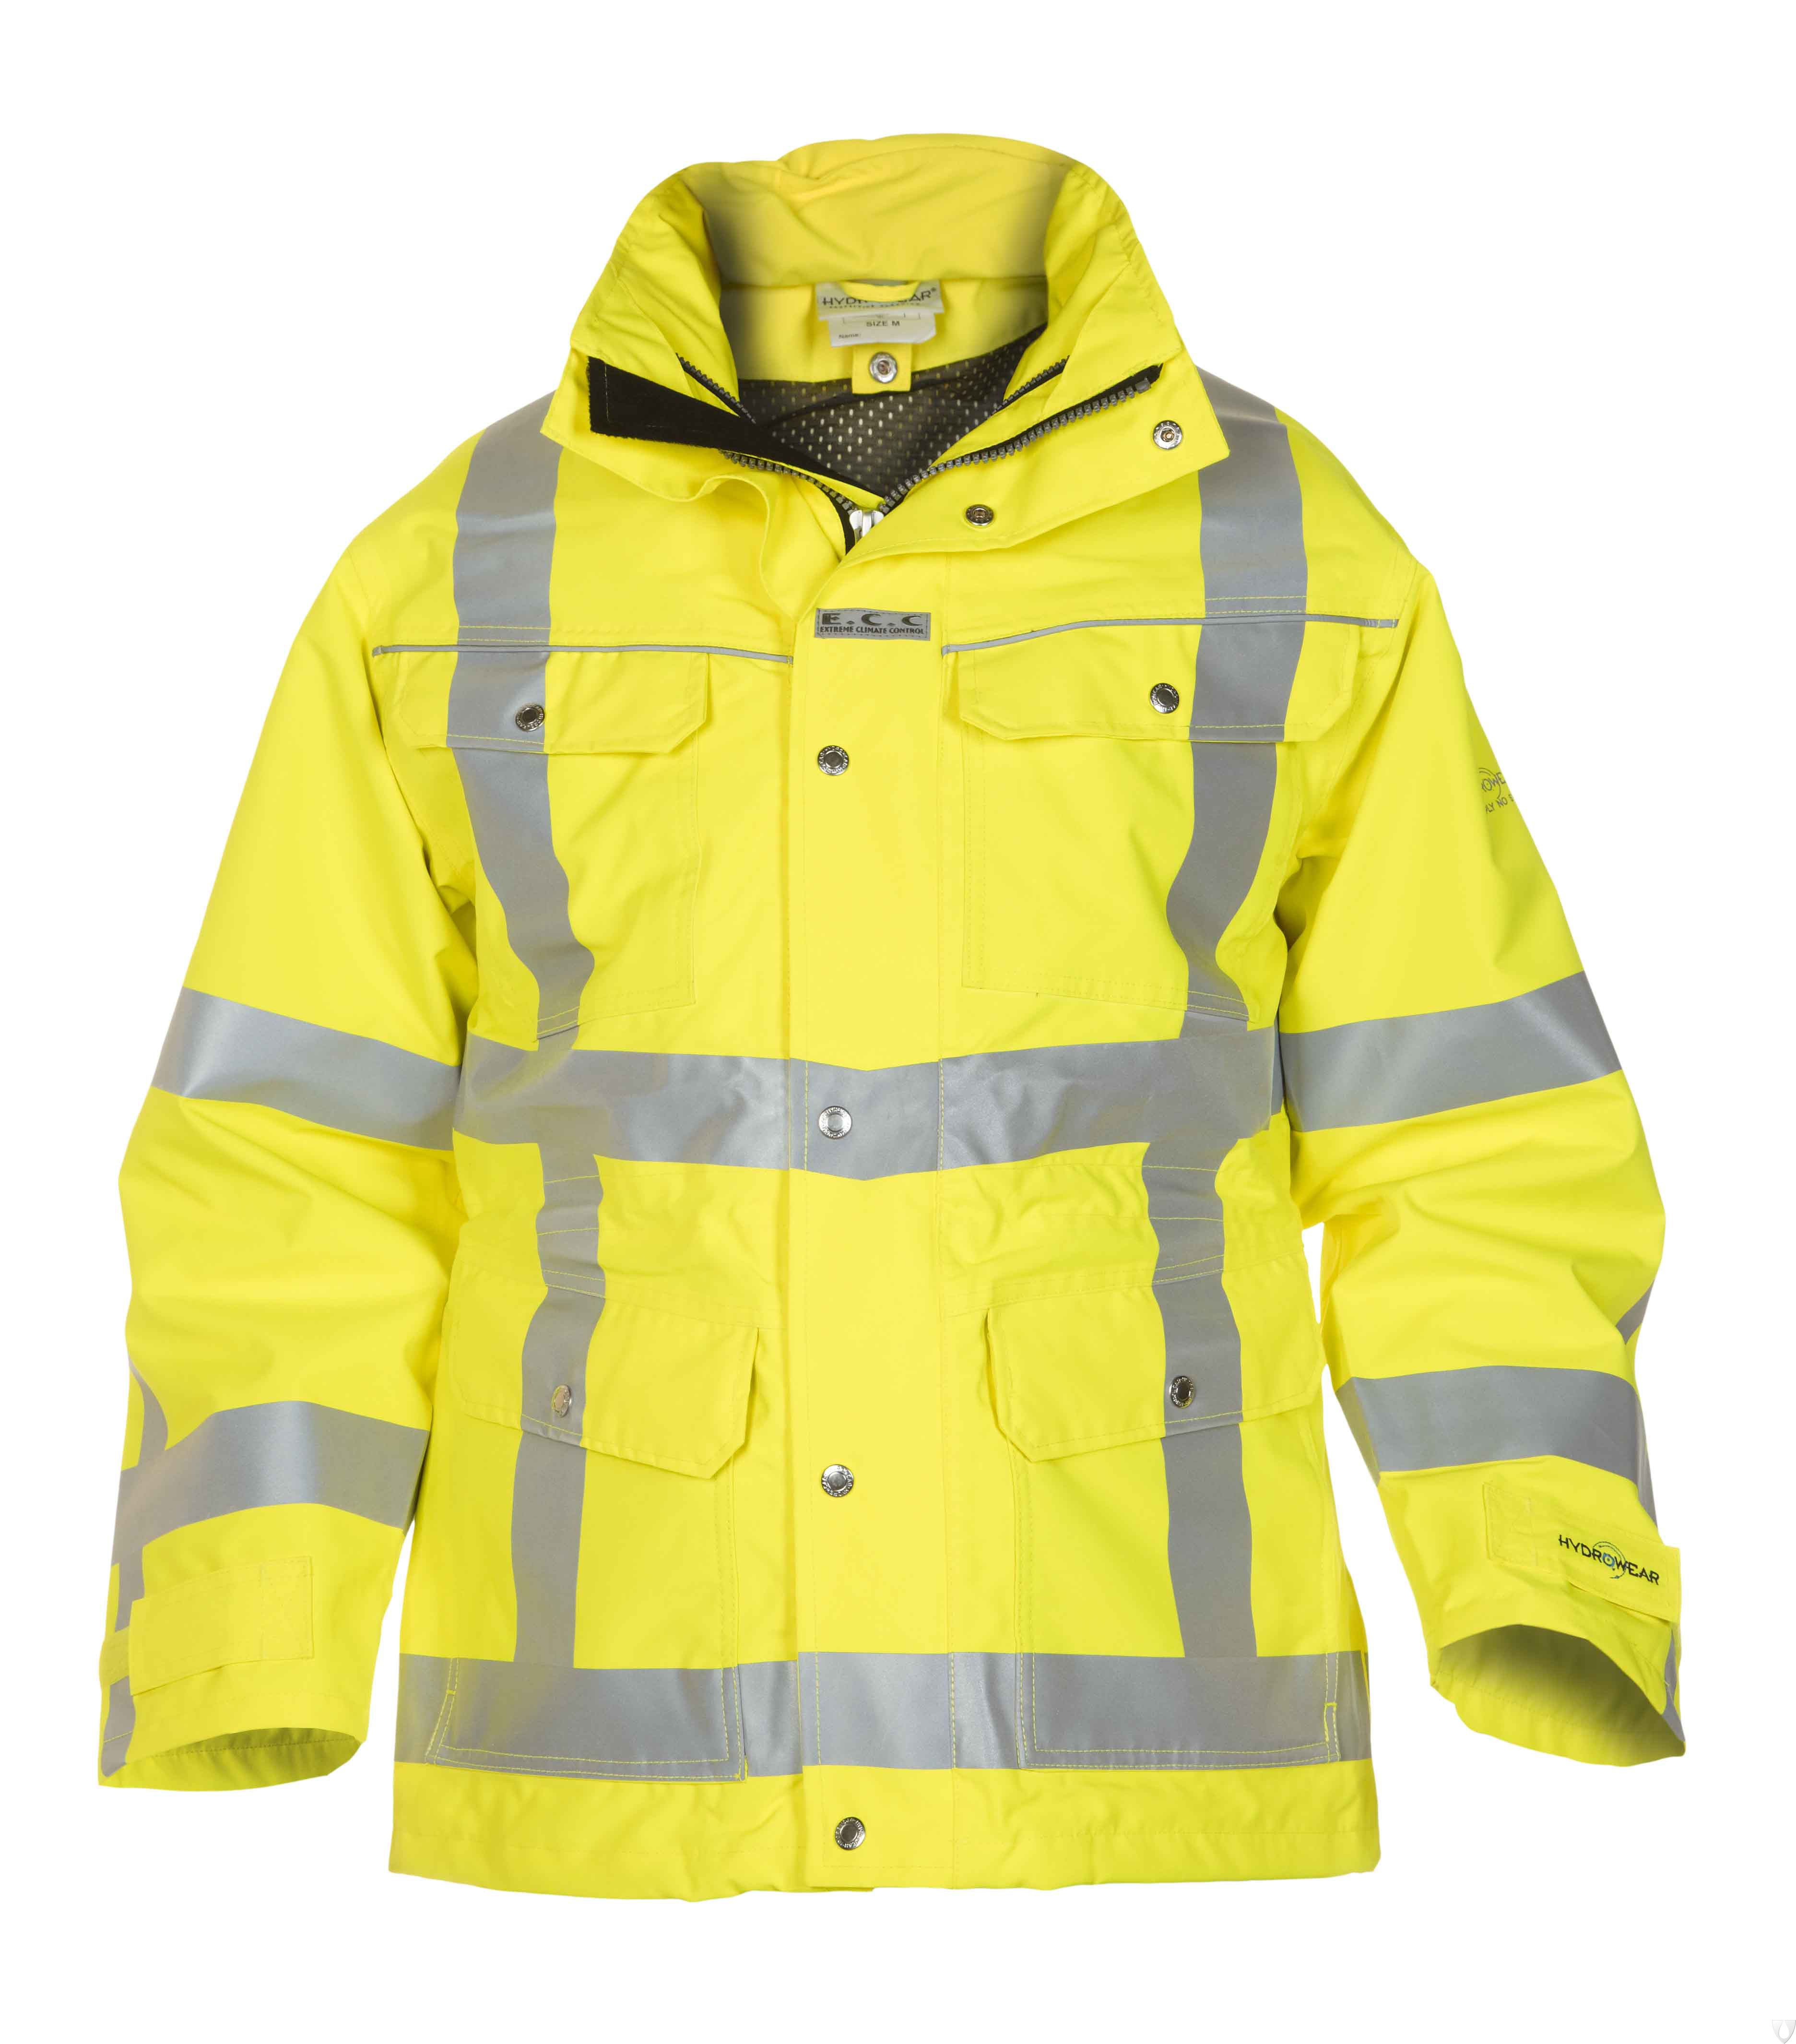 04026005P Hydrowear Parka Franeker Simply No Sweat EN471 RWS (Yellow or Orange)